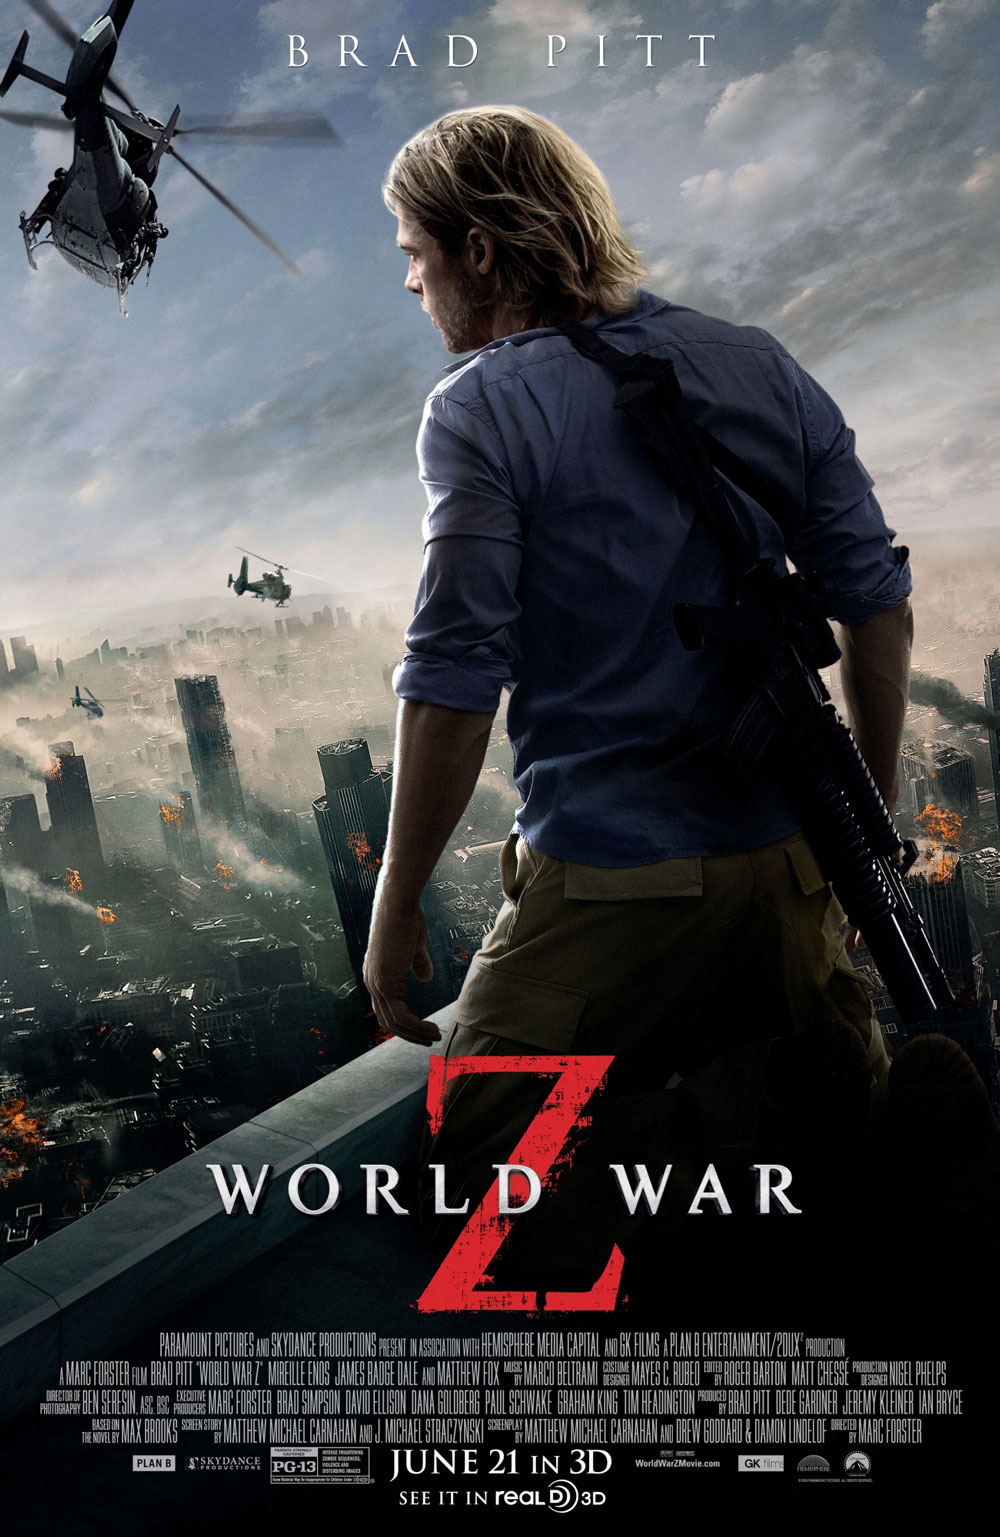 Extra Large Movie Poster Image for World War Z